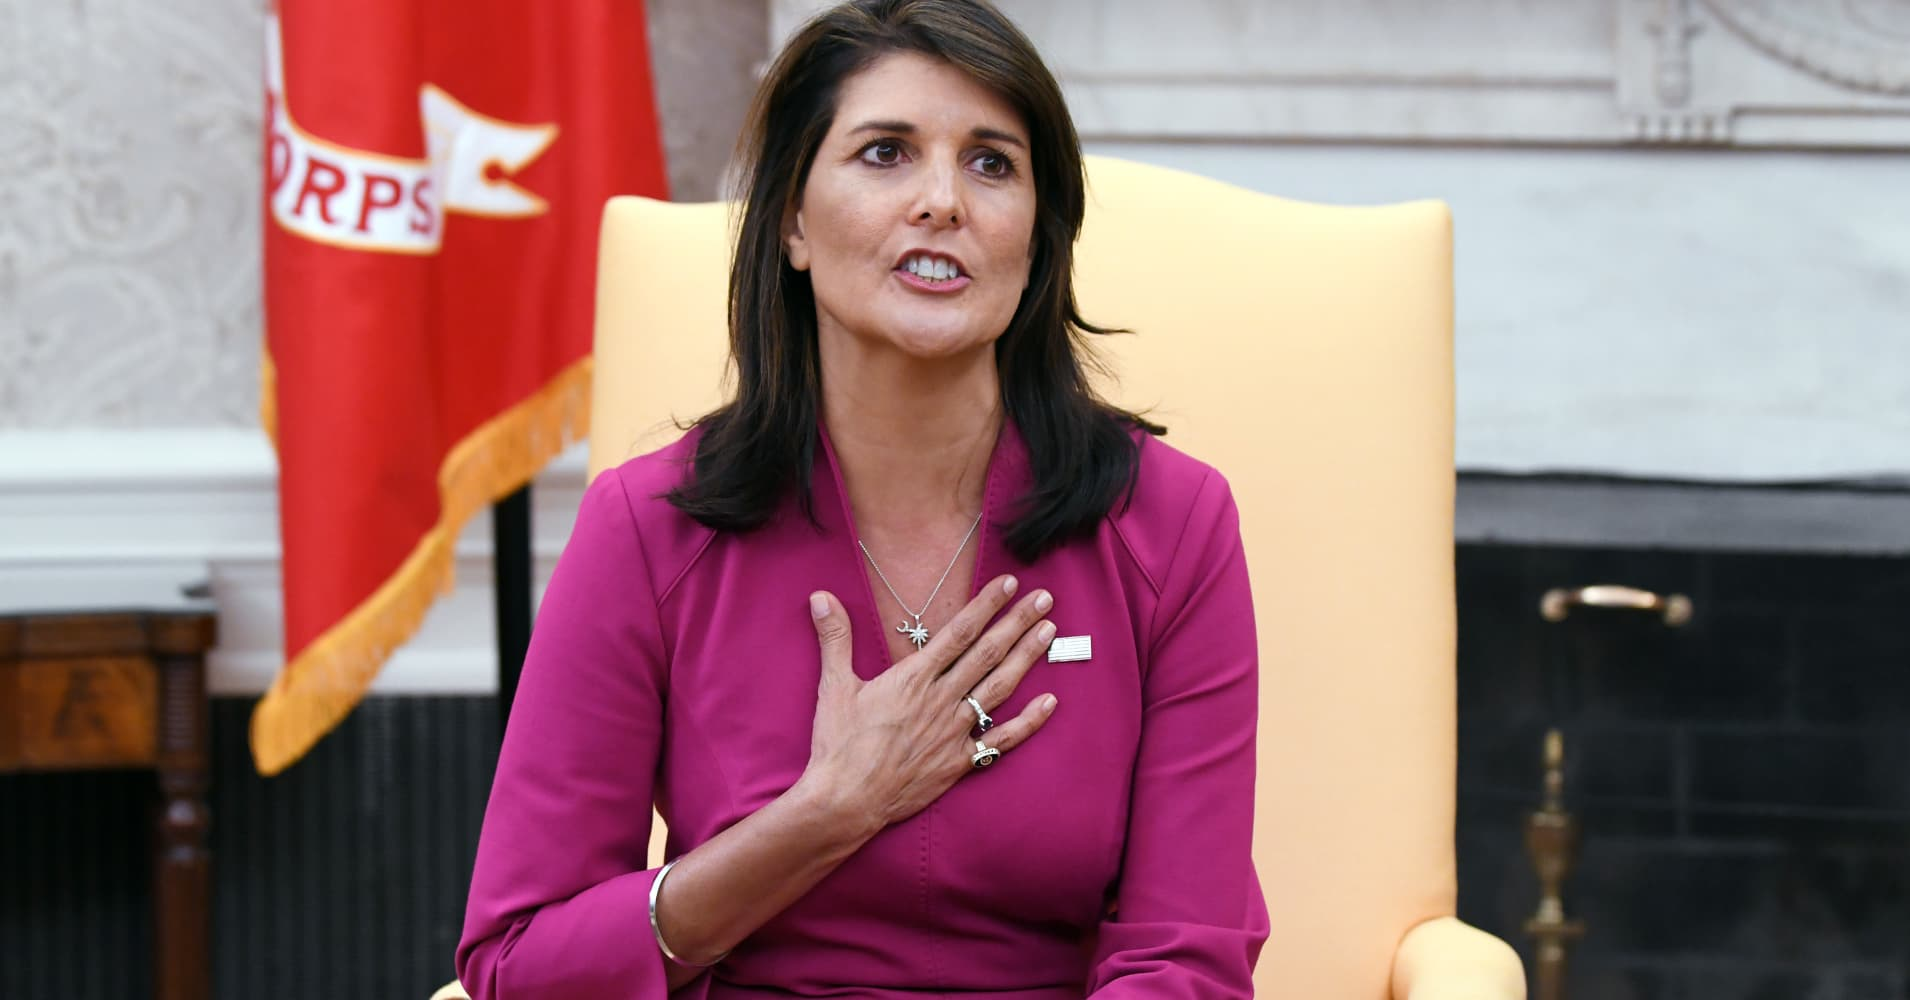 Former UN Ambassador Nikki Haley is charging a whopping $200,000 per speaking gig